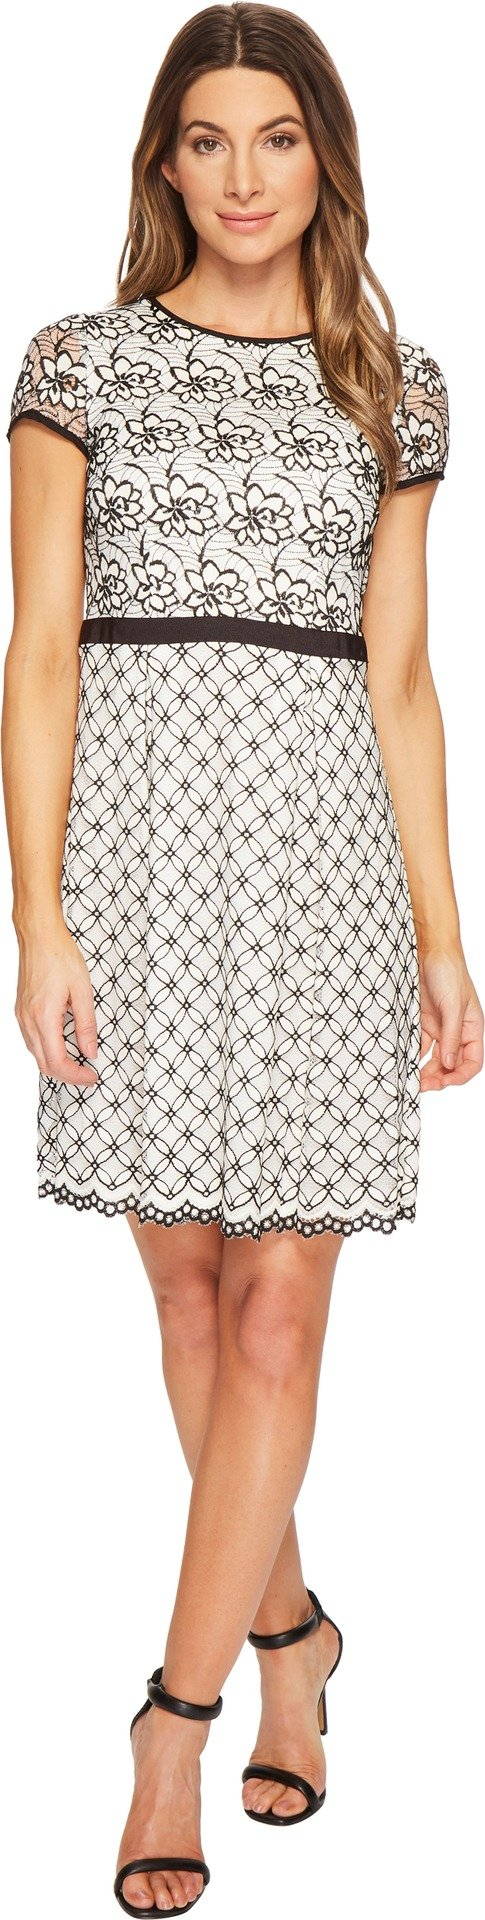 Adrianna Papell Women's Twin Lace Fit and Flare Dress Ivory/Black 10 by Adrianna Papell (Image #1)